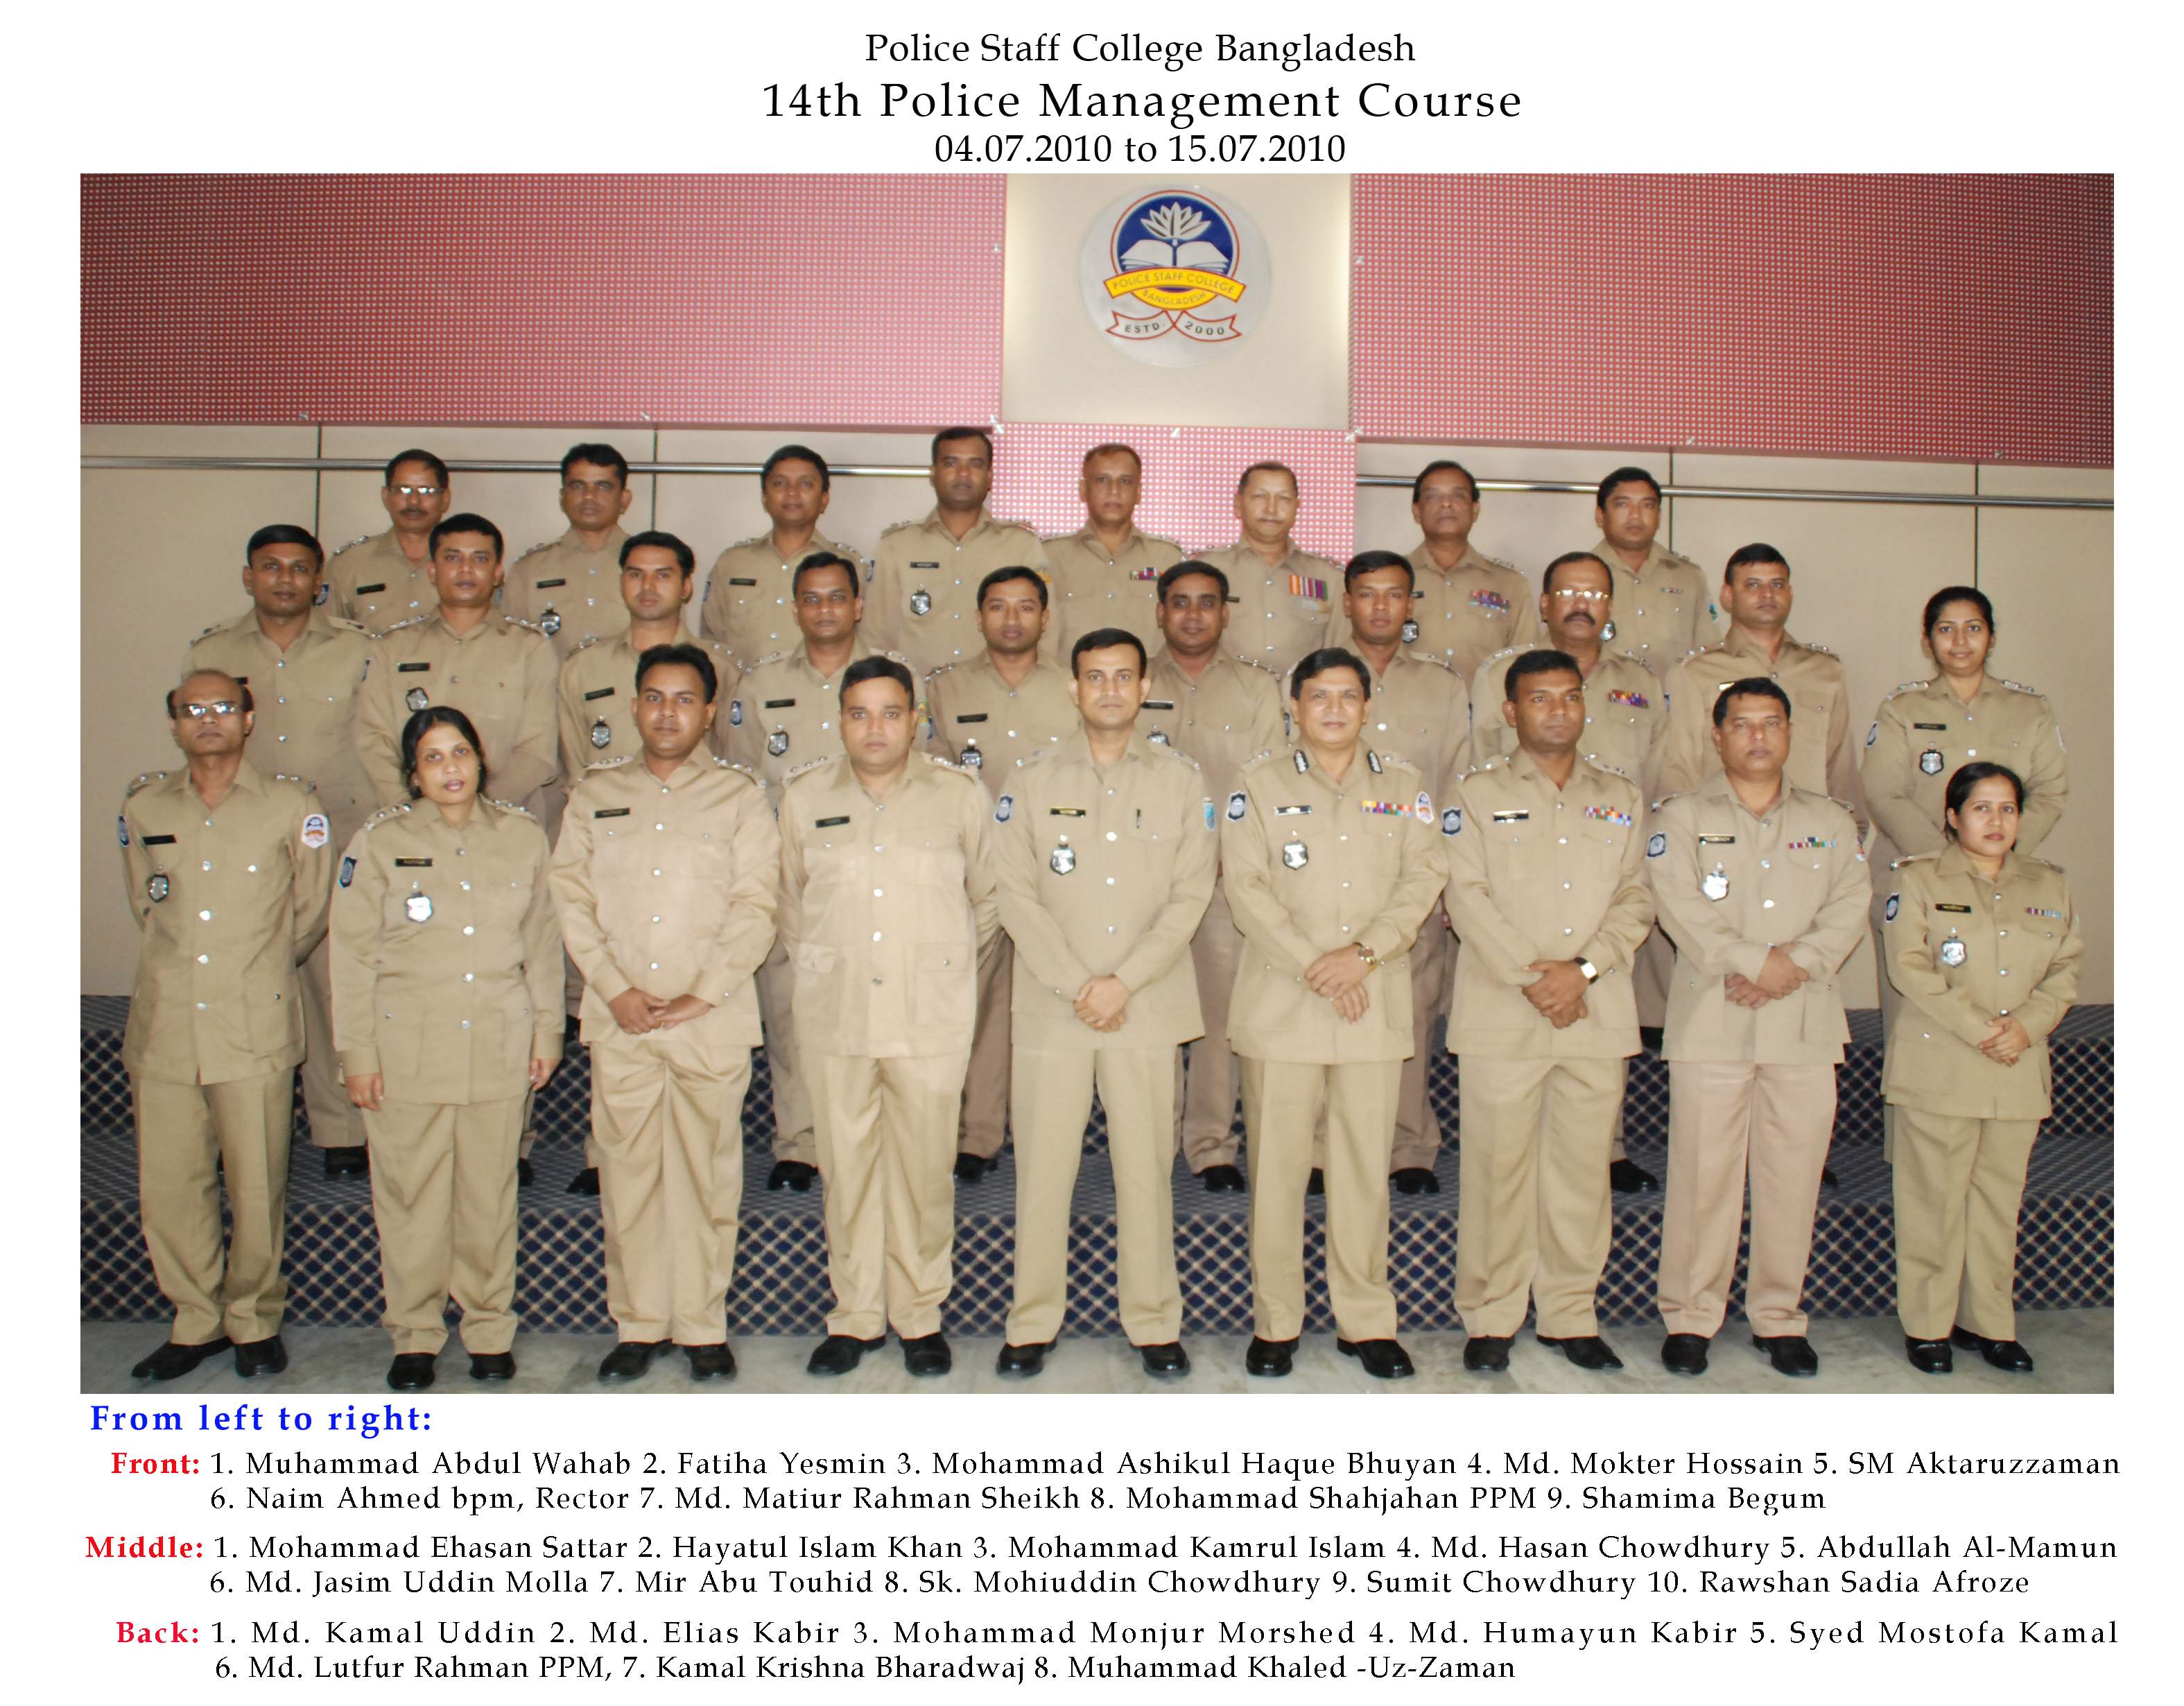 Participant of 14th Police Management Certificate Course.